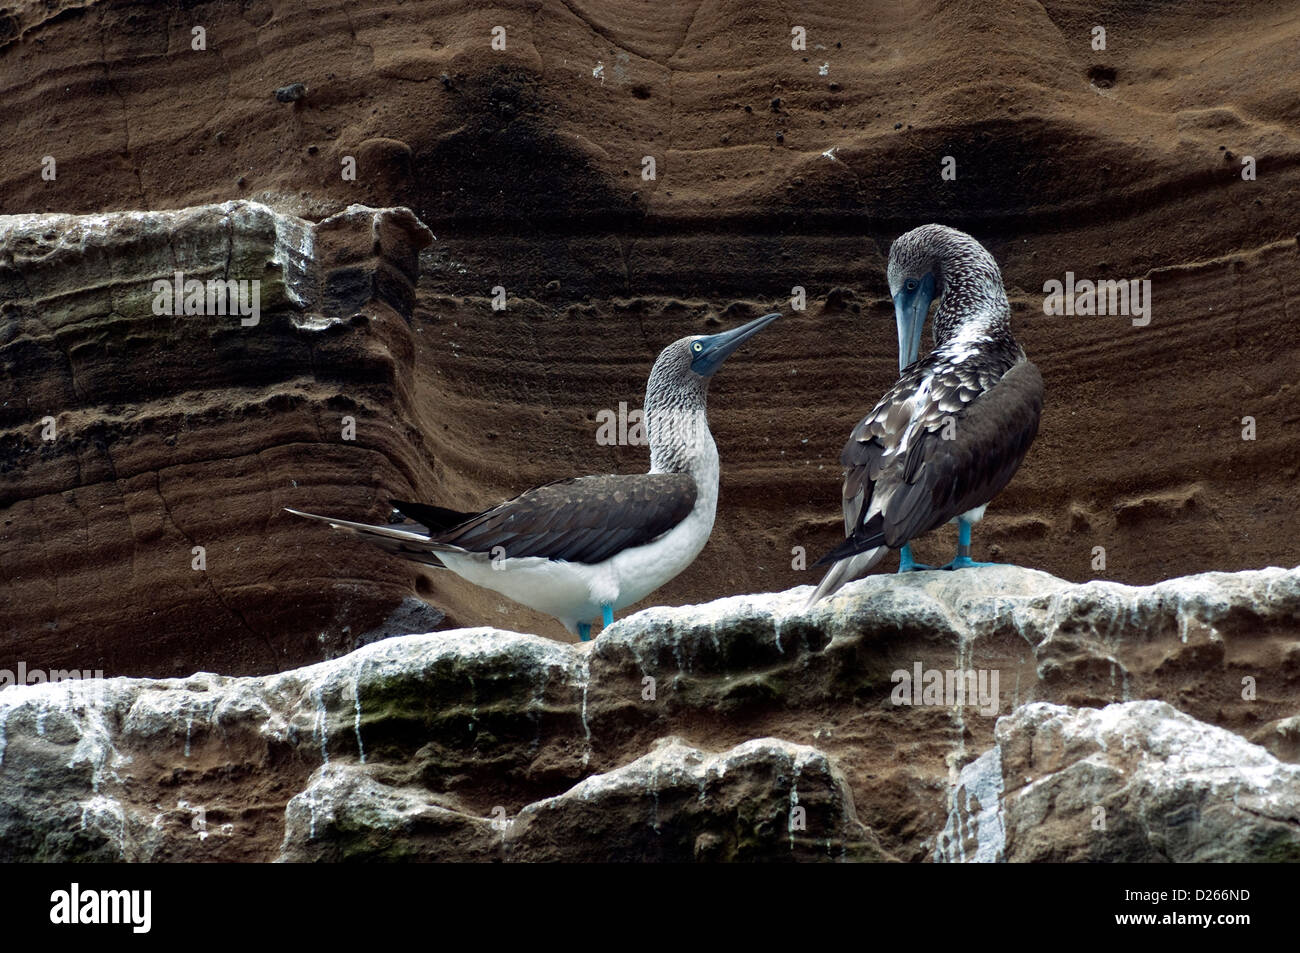 Visibly interacting, two Galapagos blue-footed boobies are populous and popular, nesting on flat surfaces, often - Stock Image